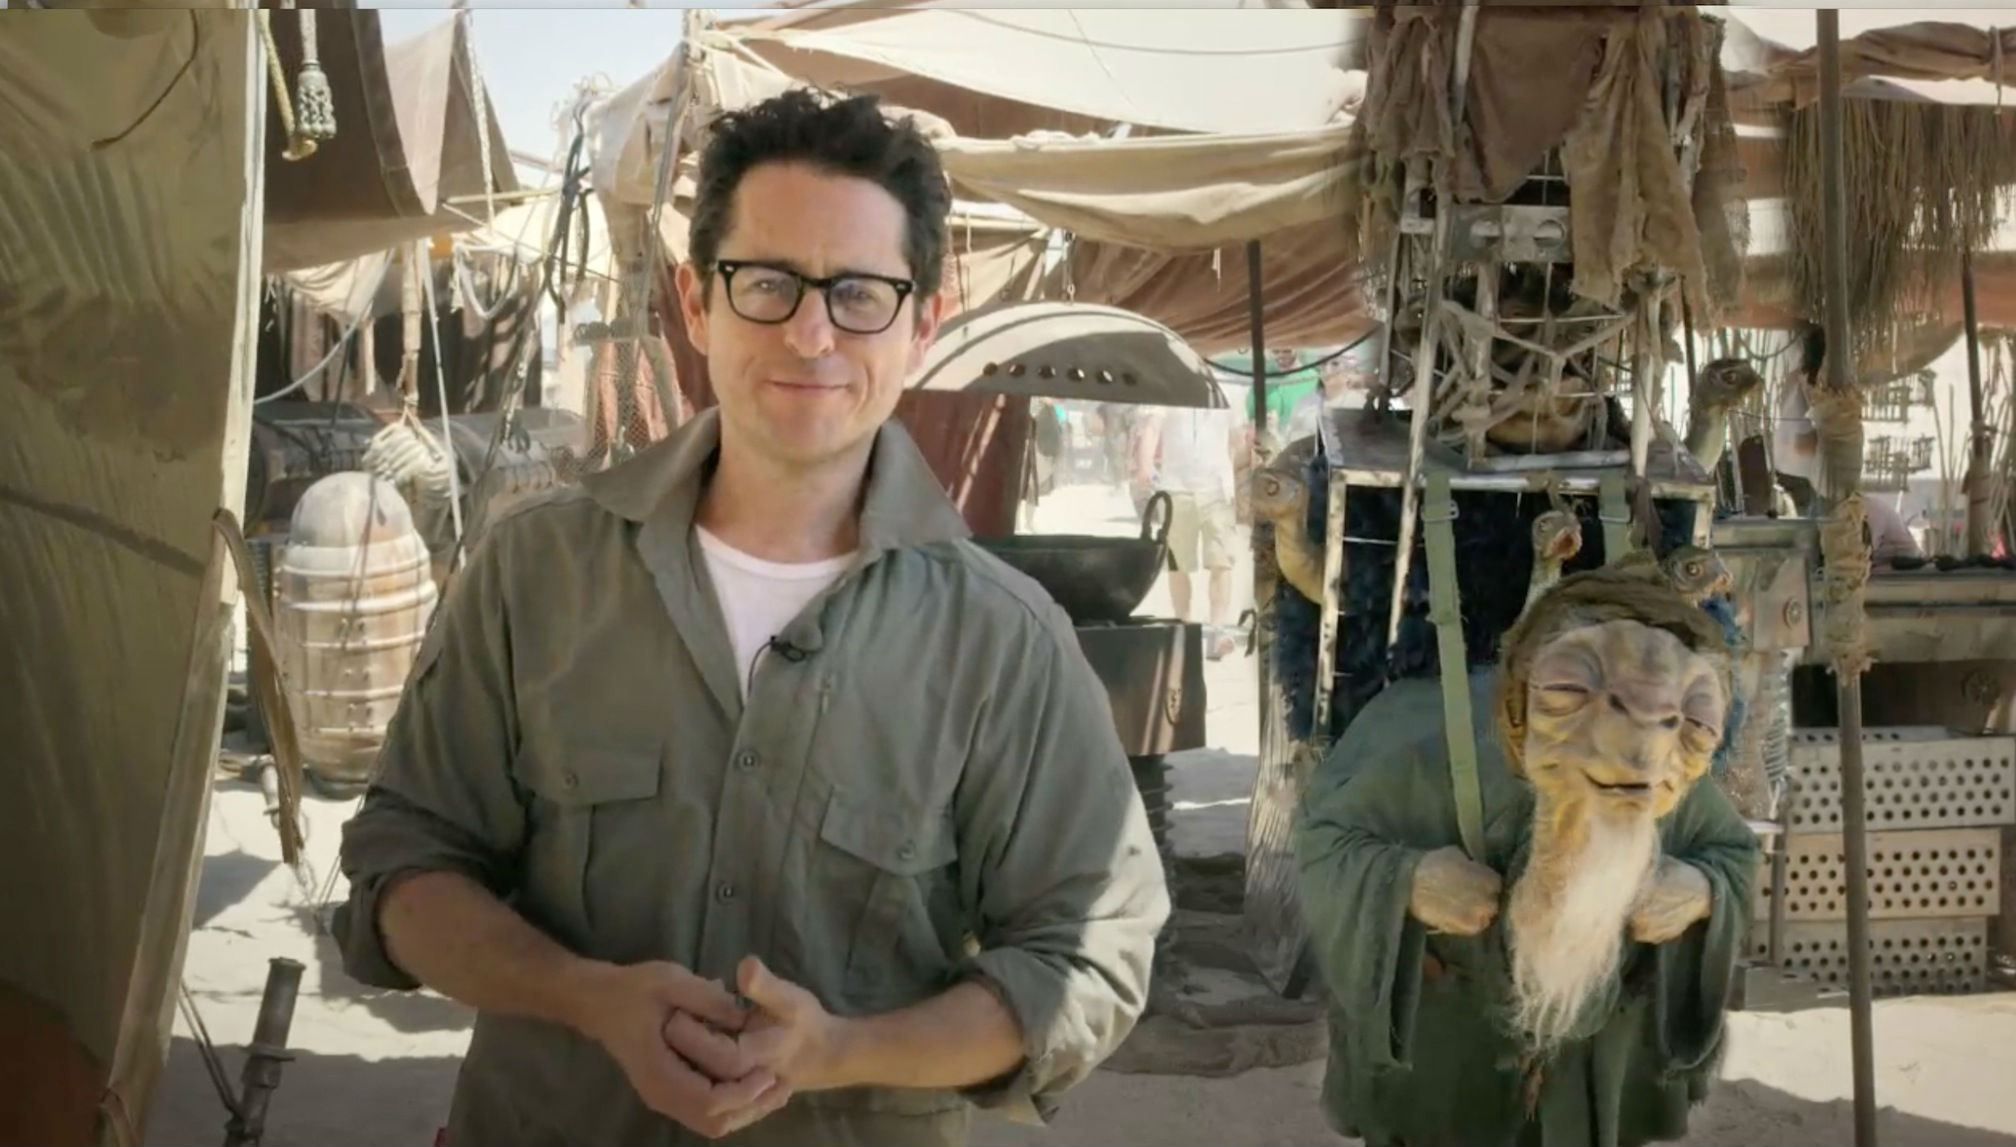 JJ-Abrams-Star-Wars-Force-Awakens-set